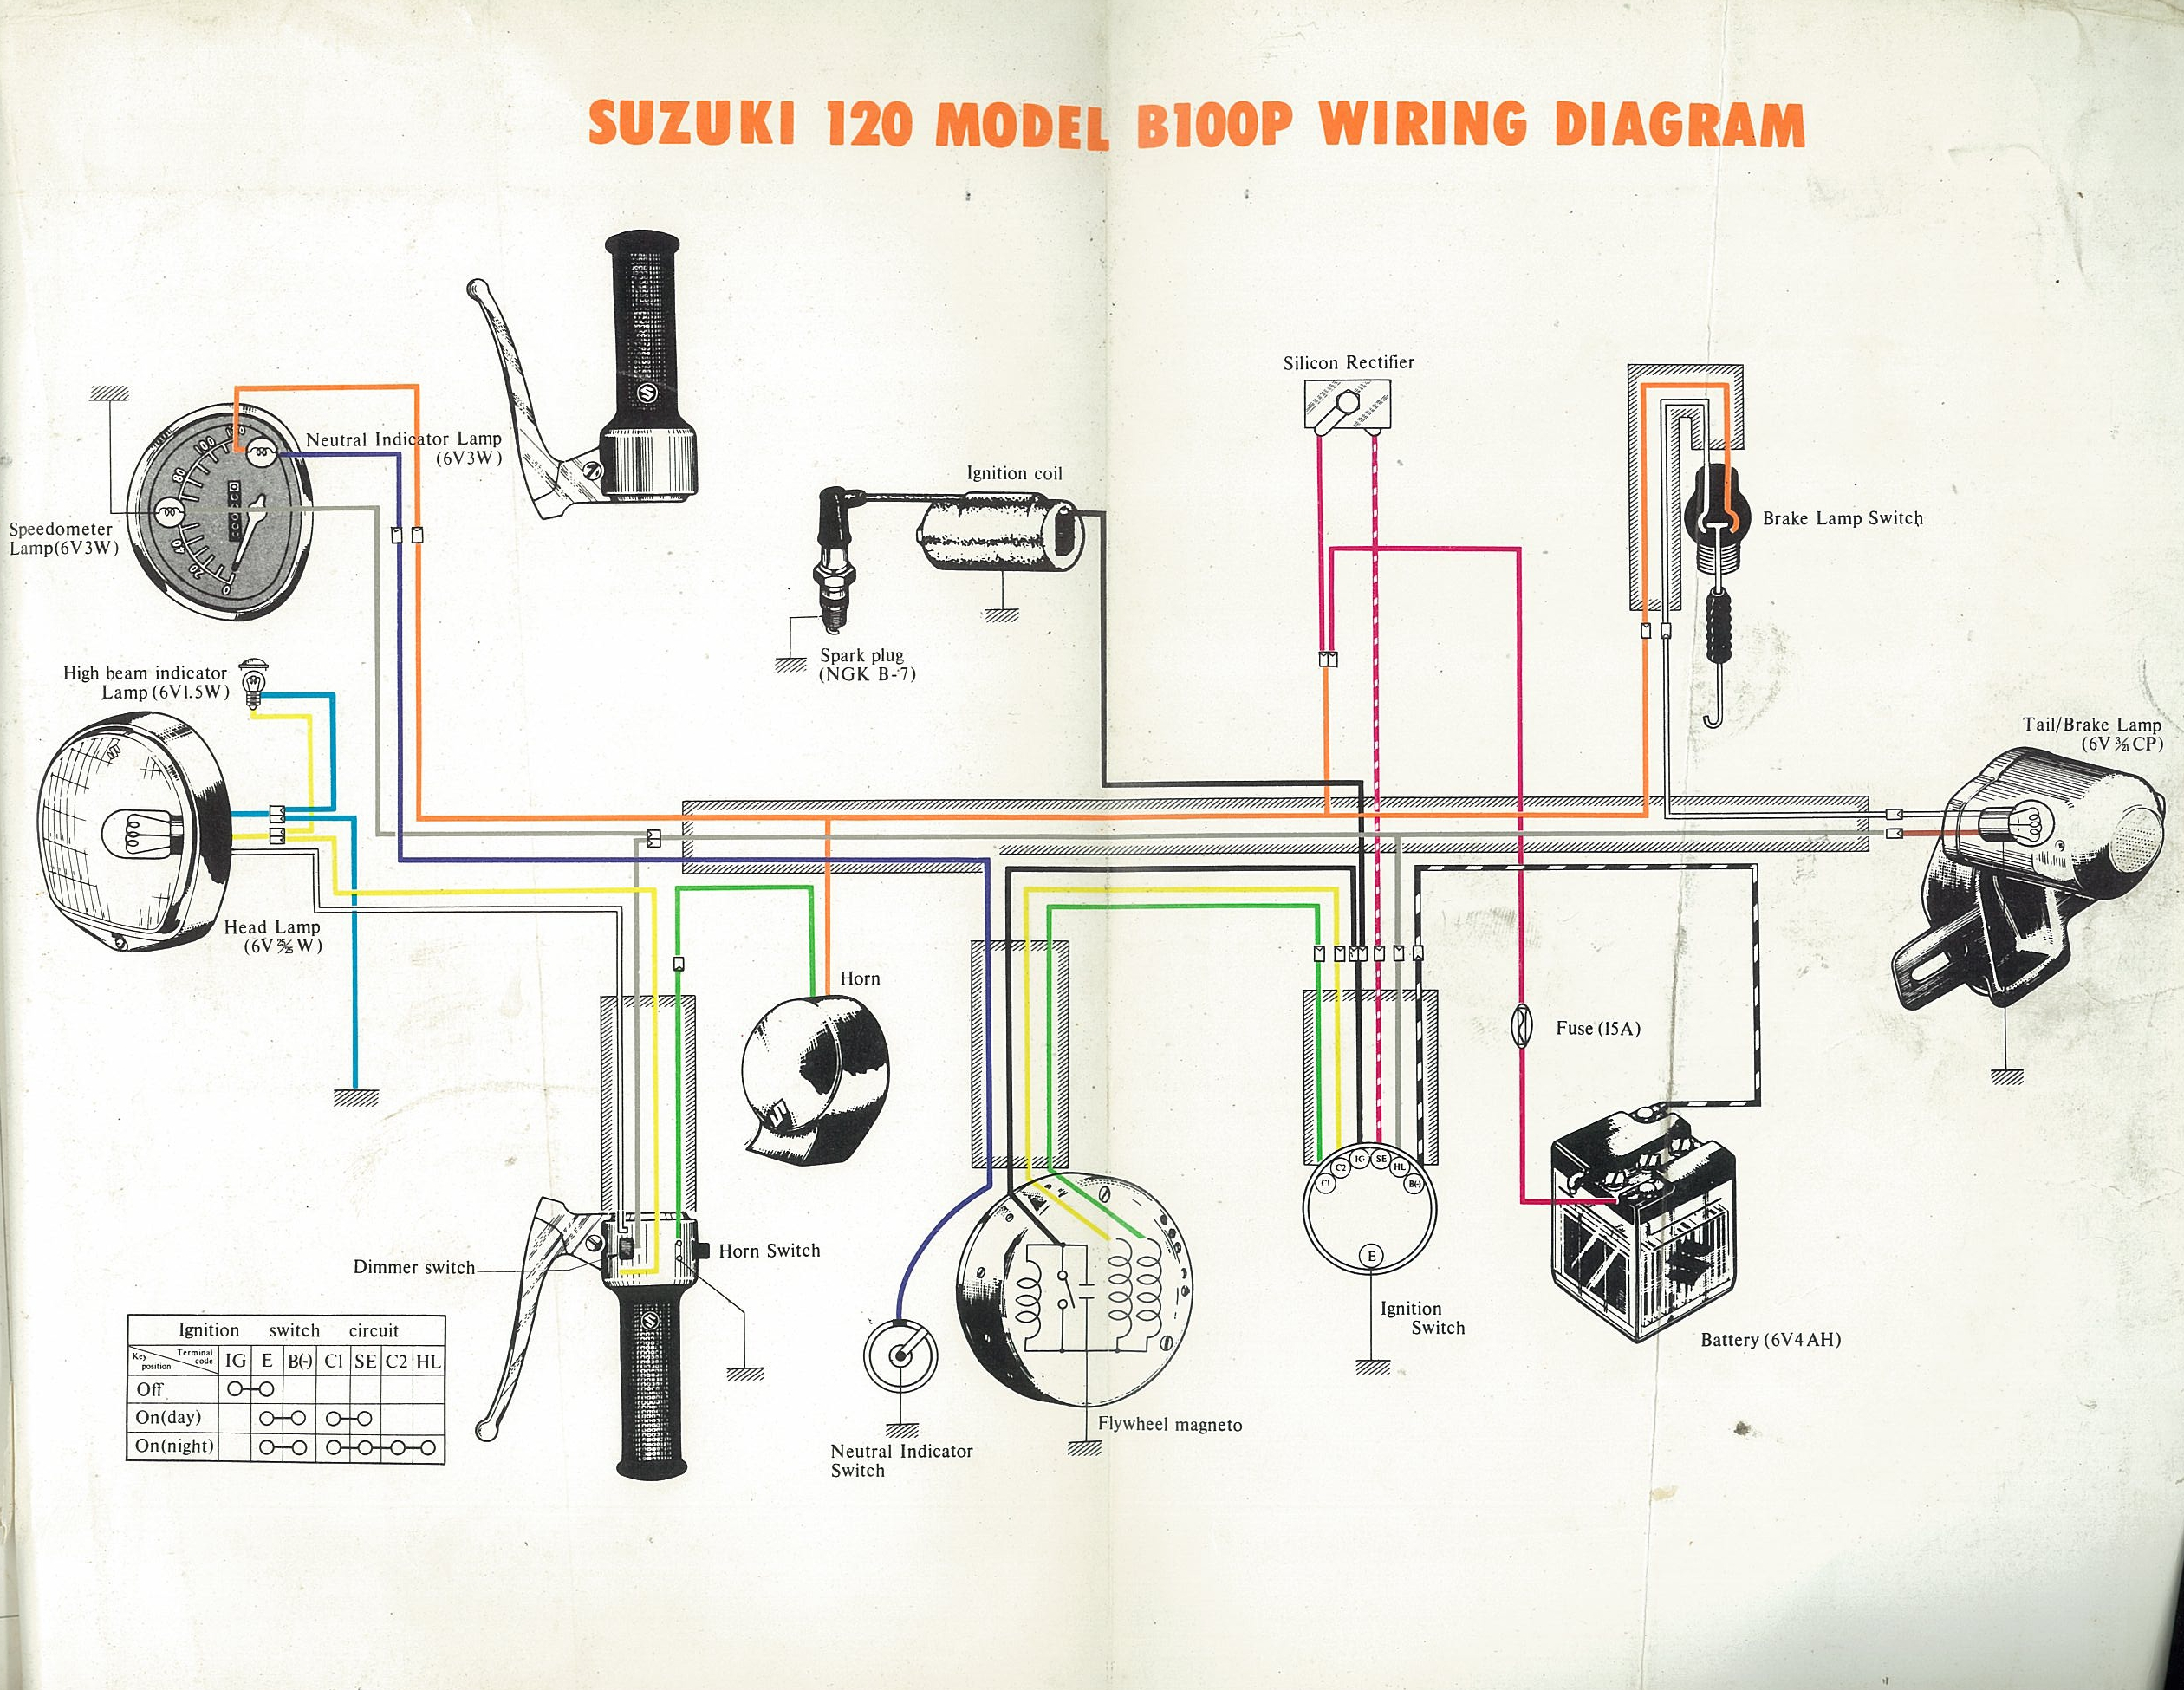 b100p wiring suzuki access wiring diagram suzuki wiring diagrams instruction honda wave 100 wiring diagram pdf at cos-gaming.co